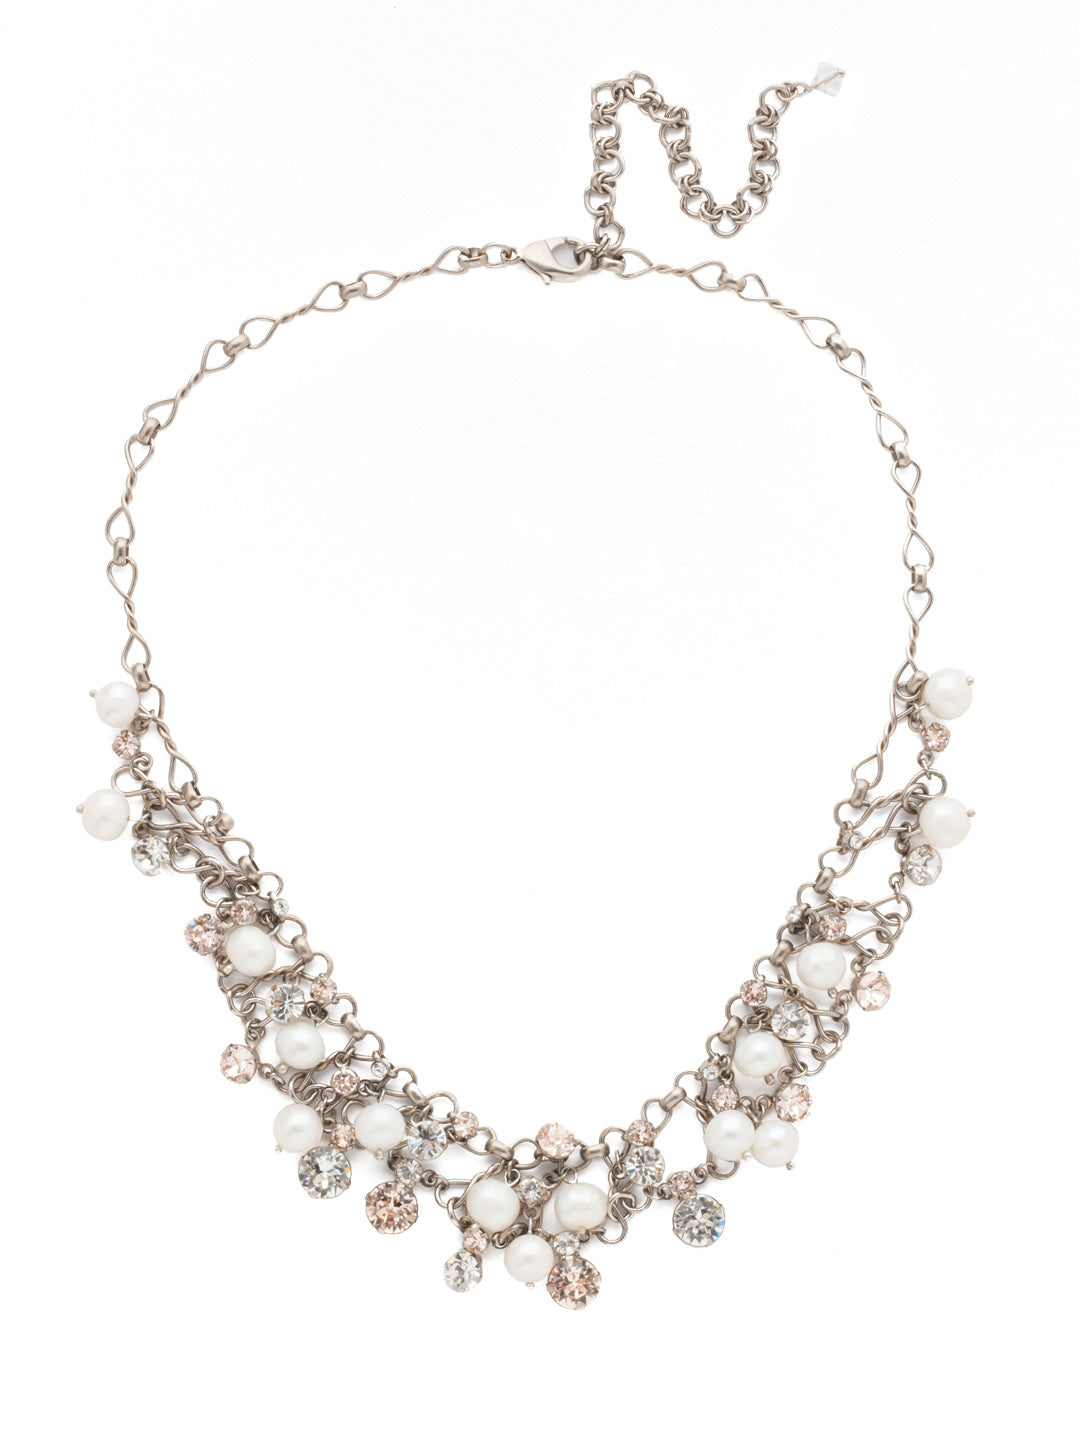 Clustered Crystal and Bead Tennis Necklace - NCF5ASPLS